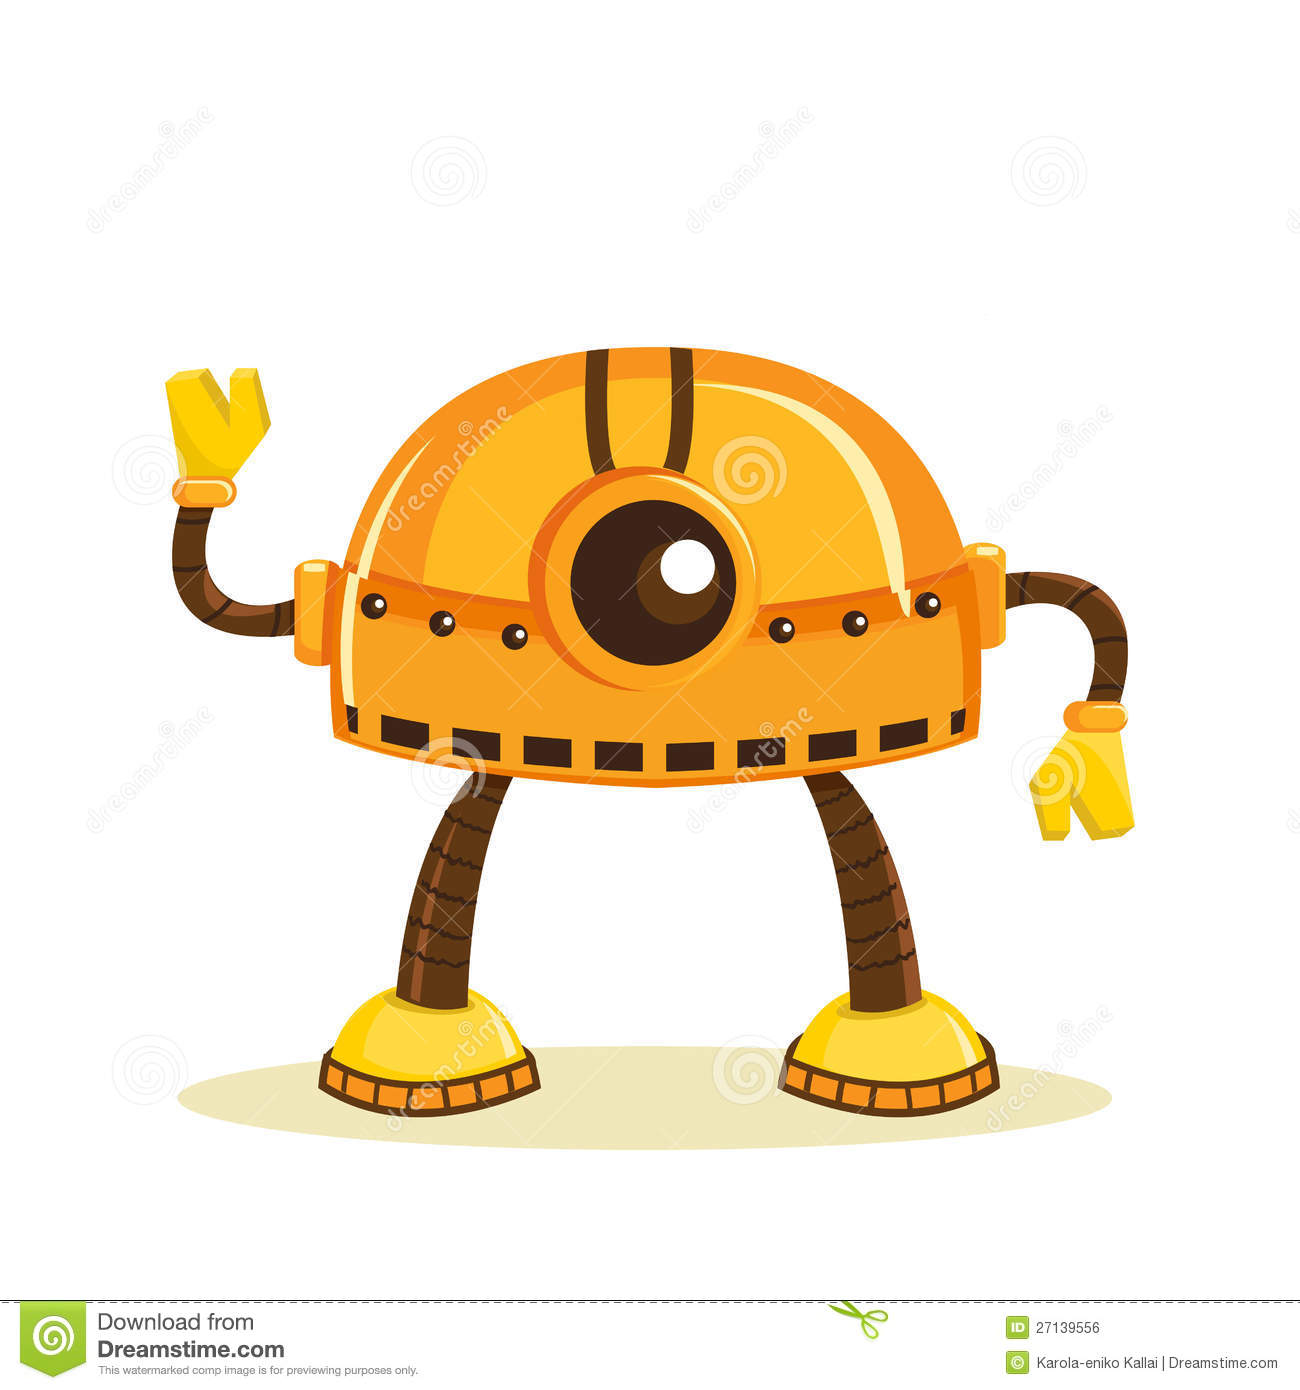 Cartoon Robot Royalty Free Stock Image - Image: 27139556